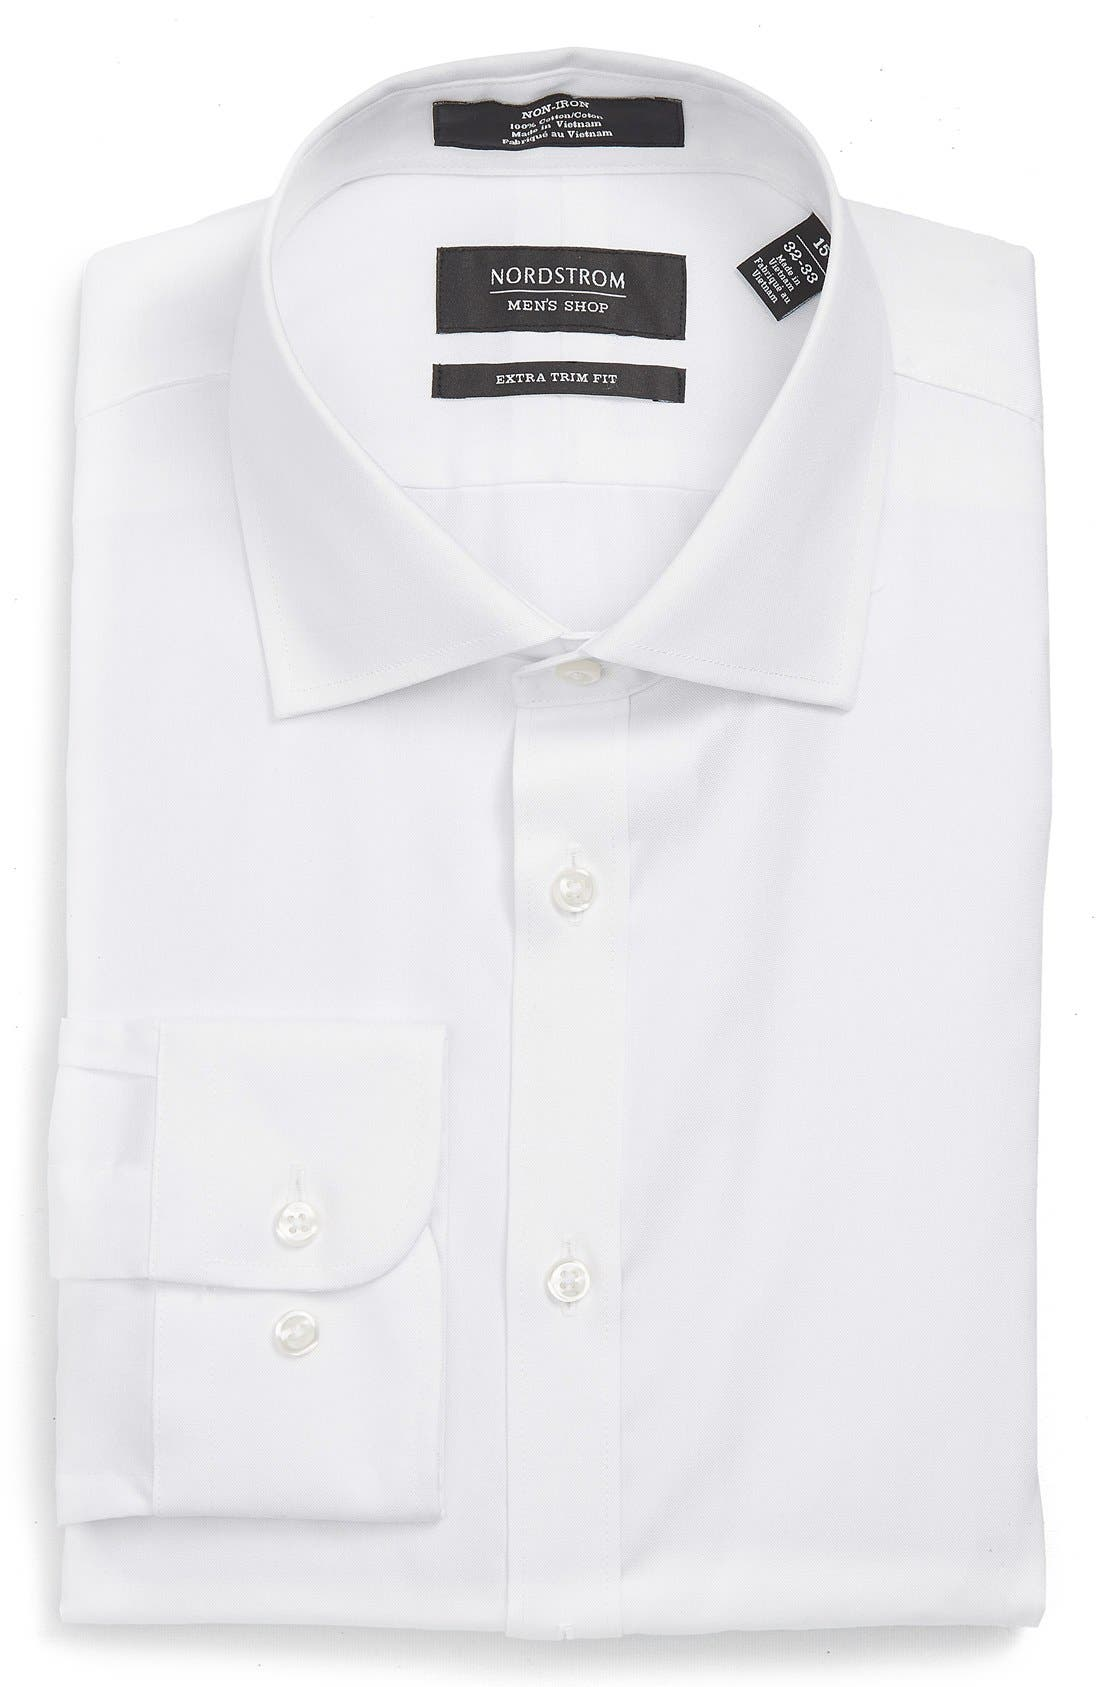 Alternate Image 1 Selected - Nordstrom Men's Shop Extra Trim Fit Non-Iron Solid Dress Shirt